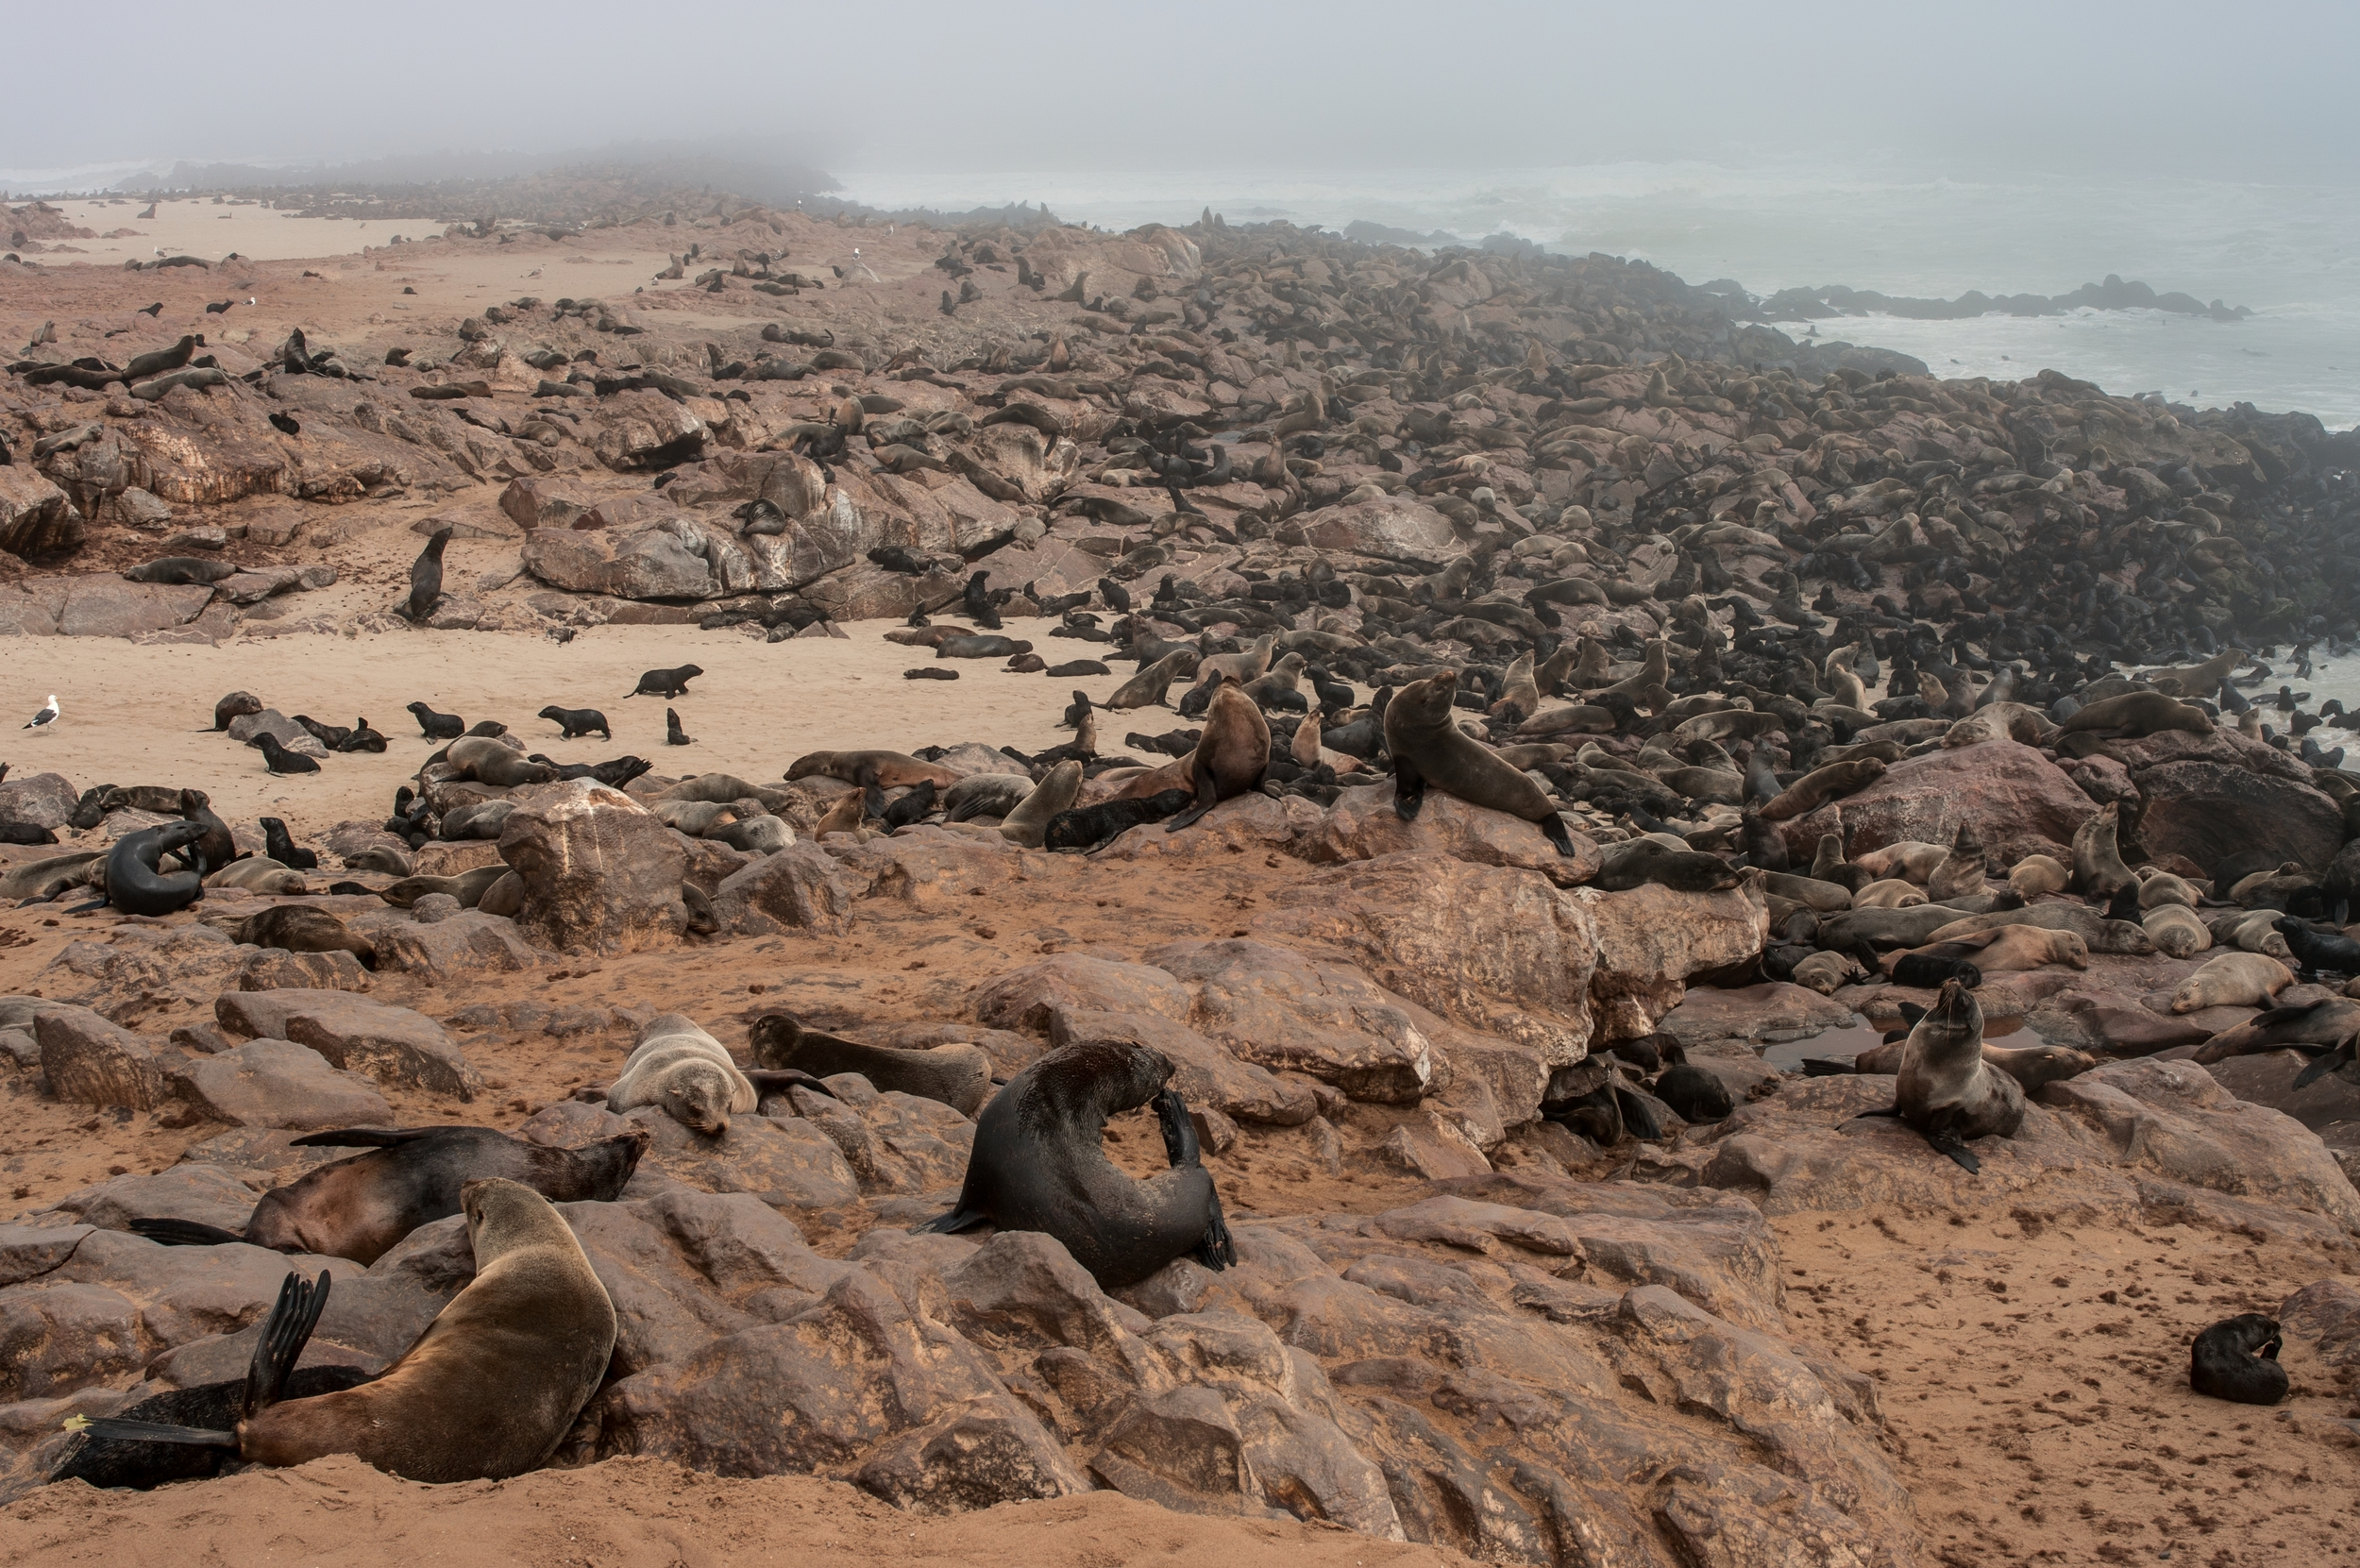 CAPE CROSS, NAMIBIA